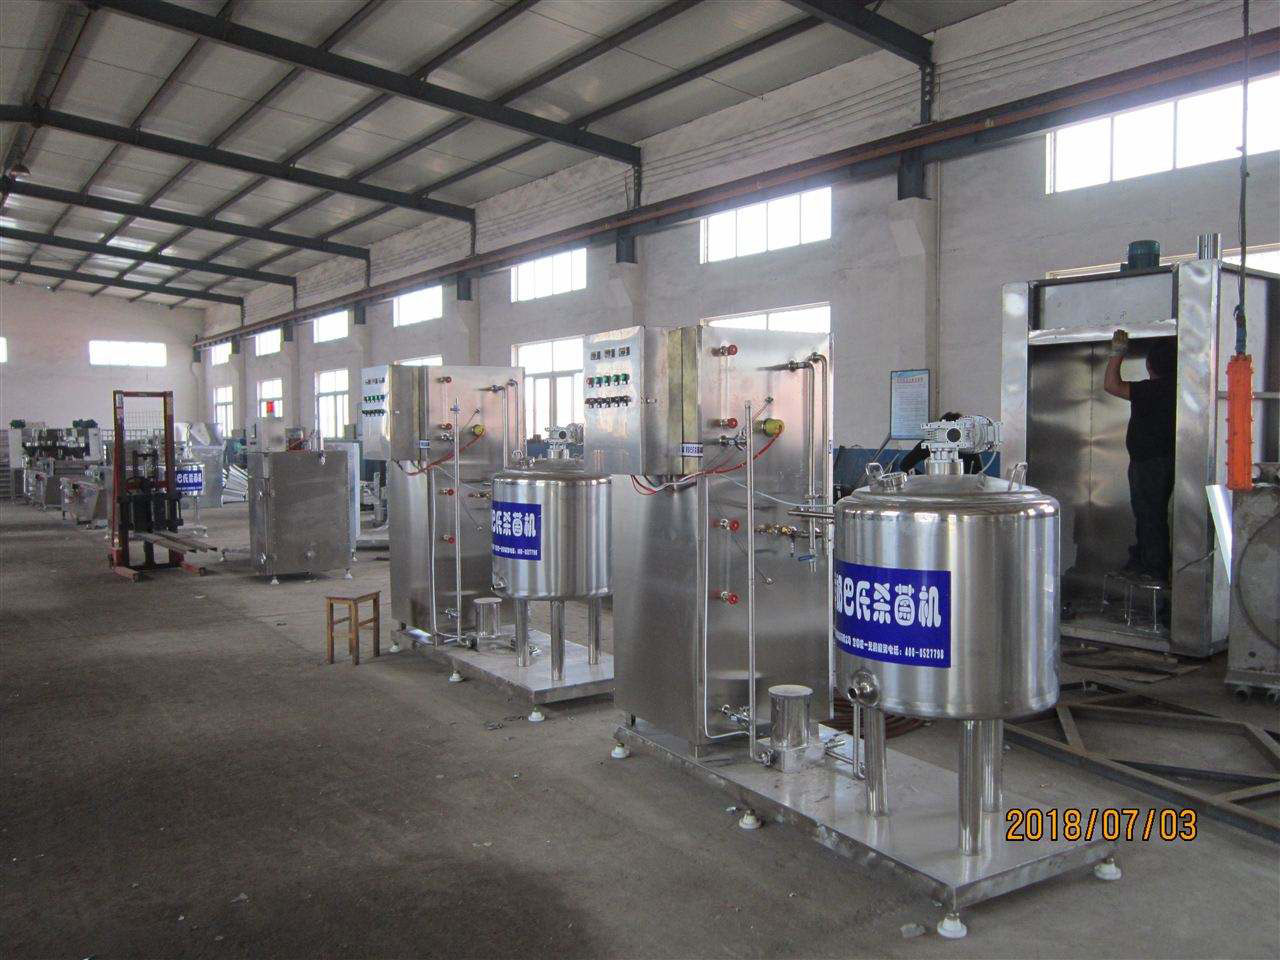 150L 100L 50L low and high temperature automatic control system batch milk ice cream pasteurization pasteurizer